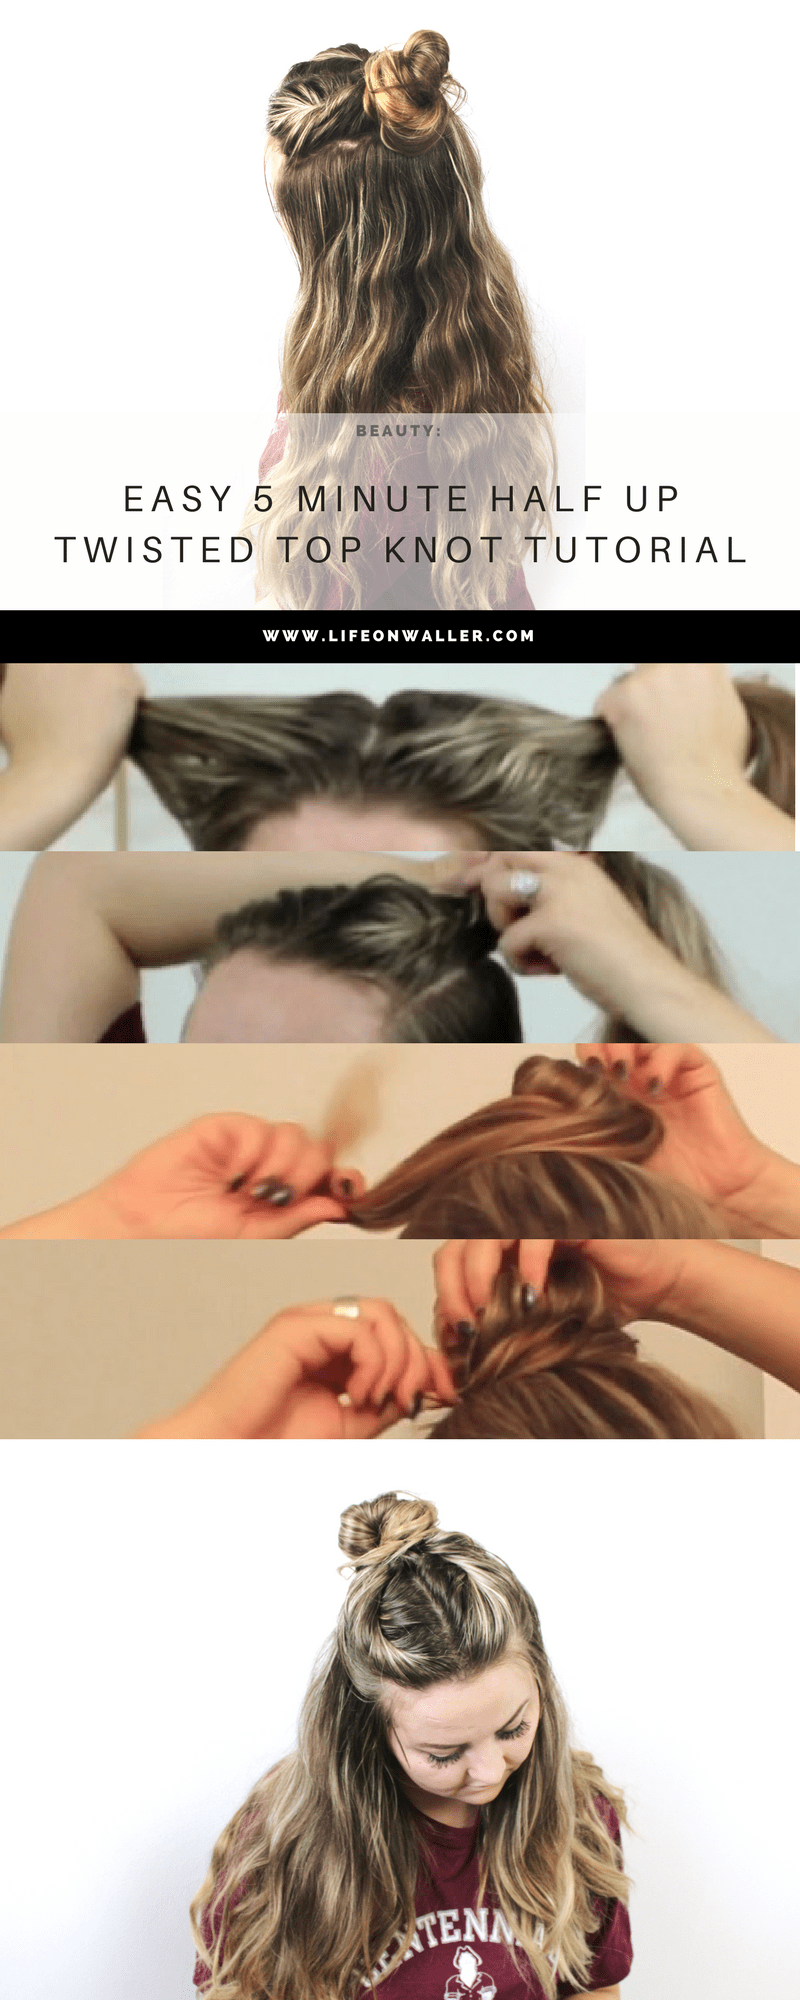 Easy 5 Minute twisted to knot half up hairstyle